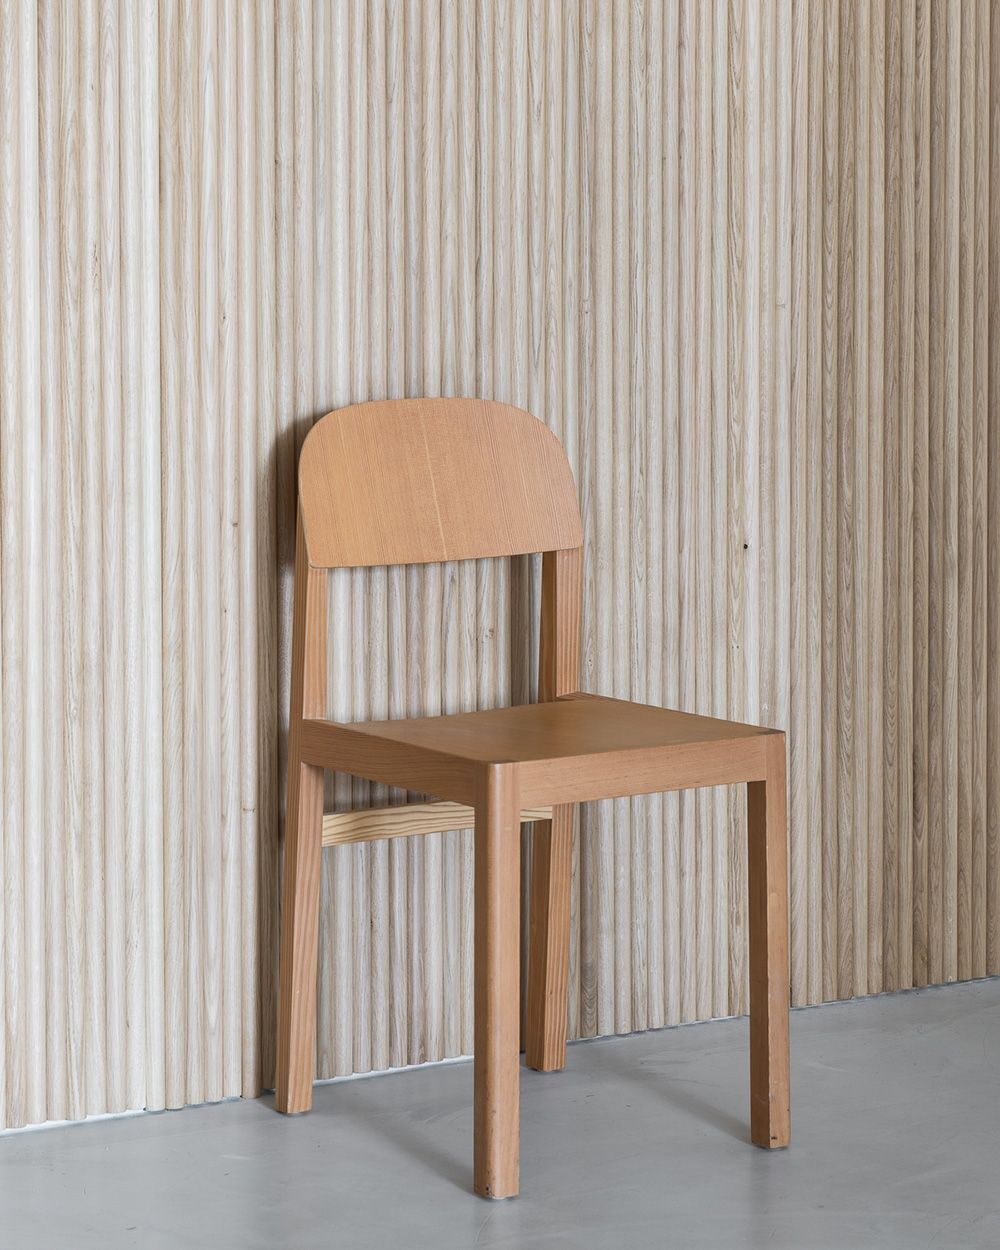 Minimal And Modern Solid Wooden Dining Chair From Muuto The Workshop Chai Scandinavian Furniture Design Chair Design Wooden Restoration Hardware Dining Chairs